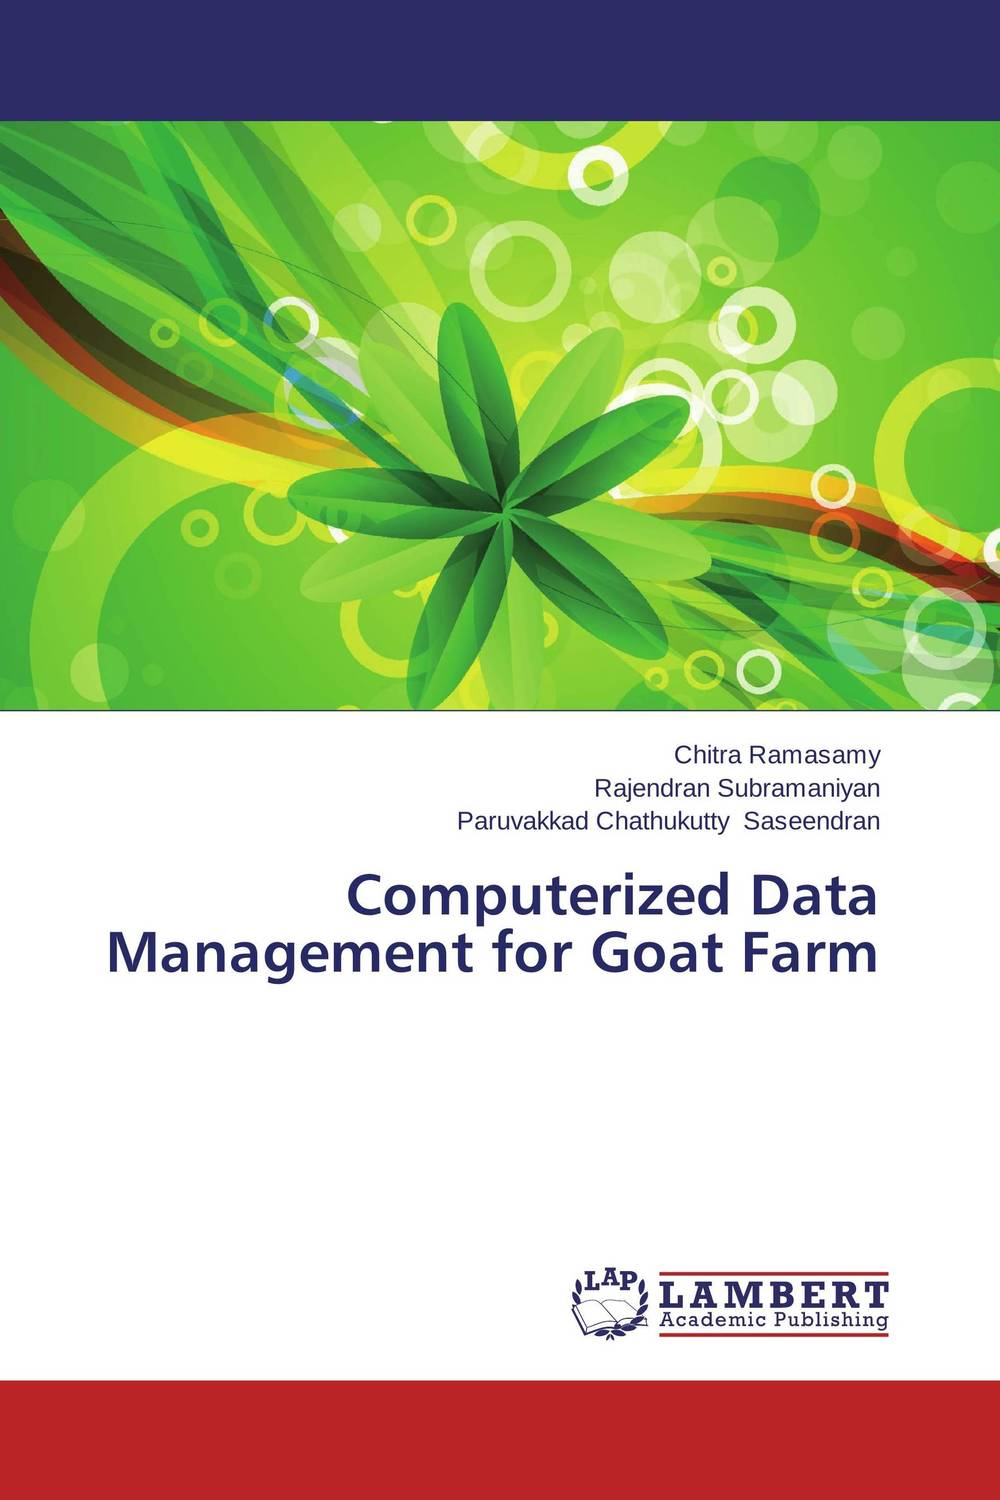 Computerized Data Management for Goat Farm evaluation and developing an onion peeling system